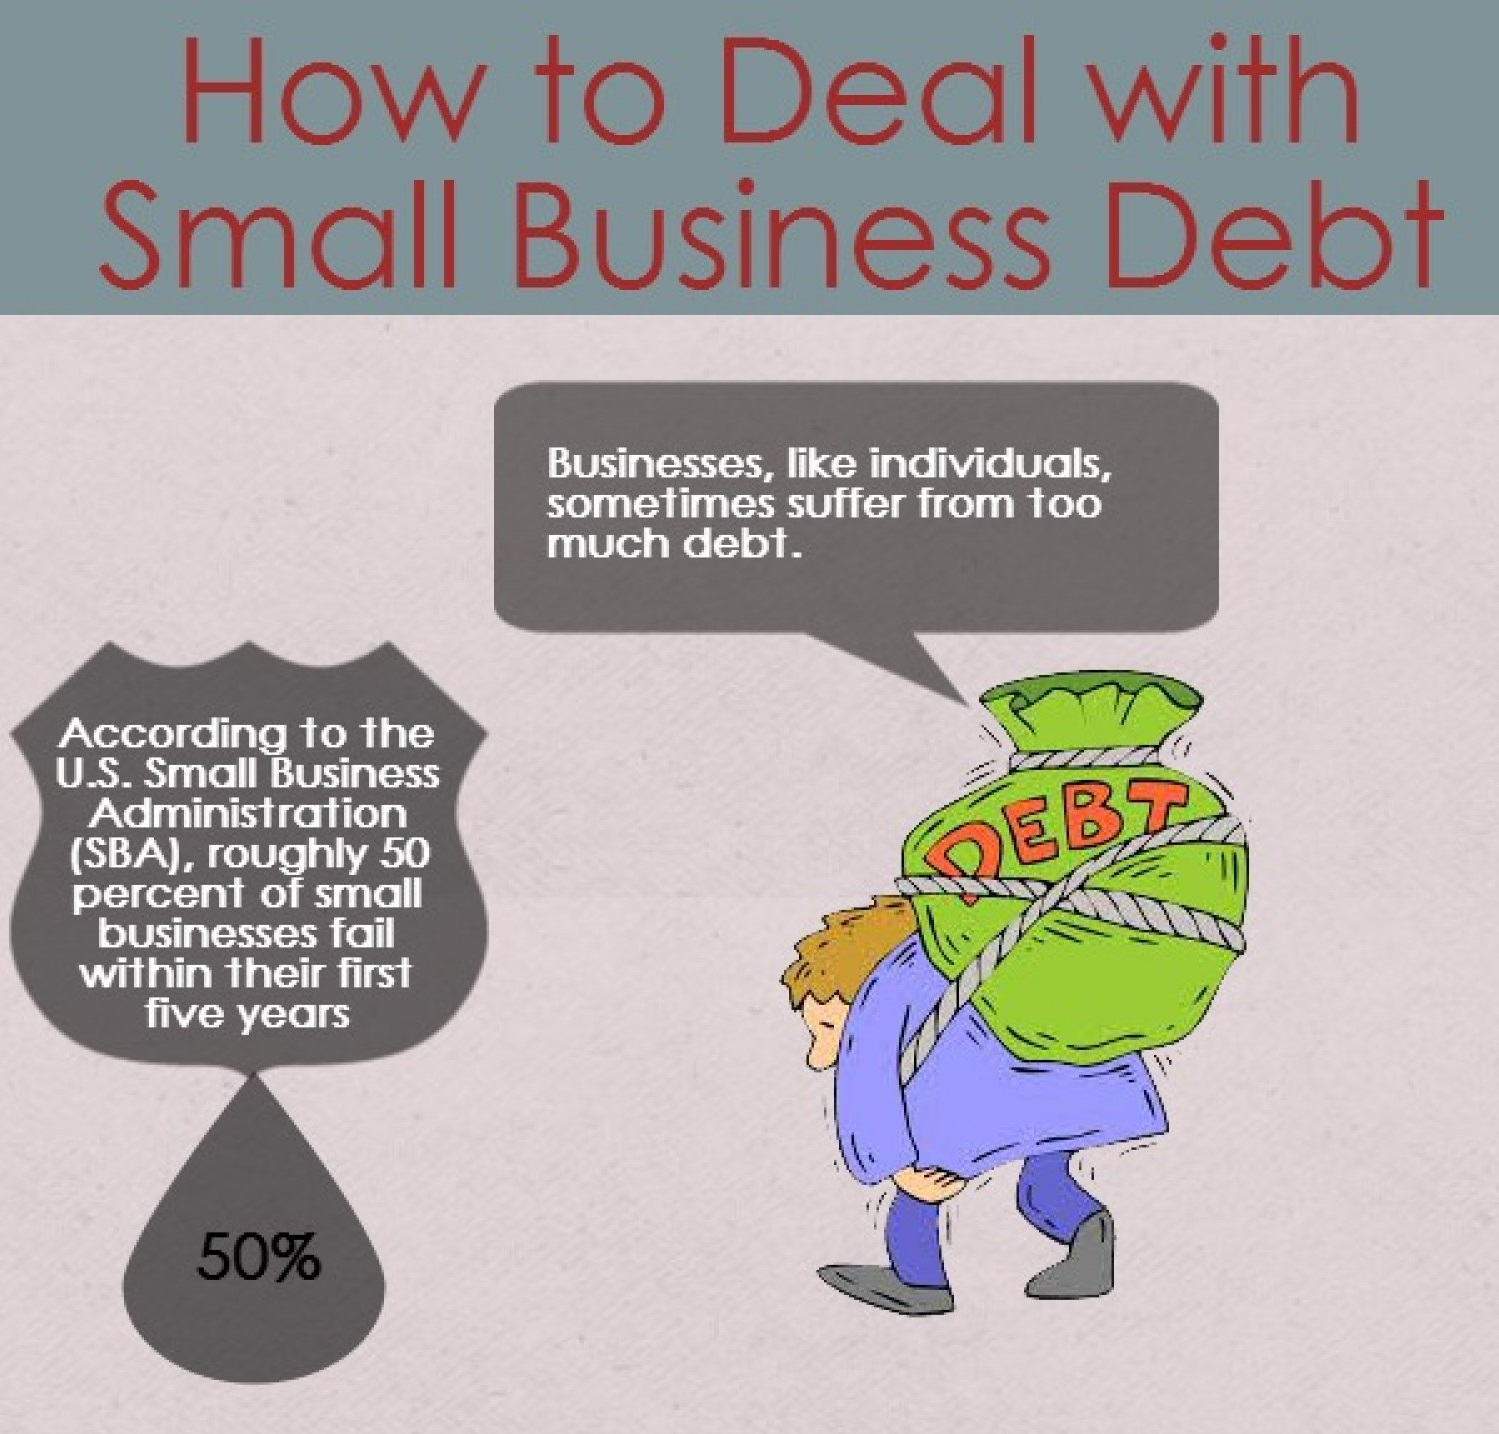 How to Successfully Survive the Burden of Small Business Debt